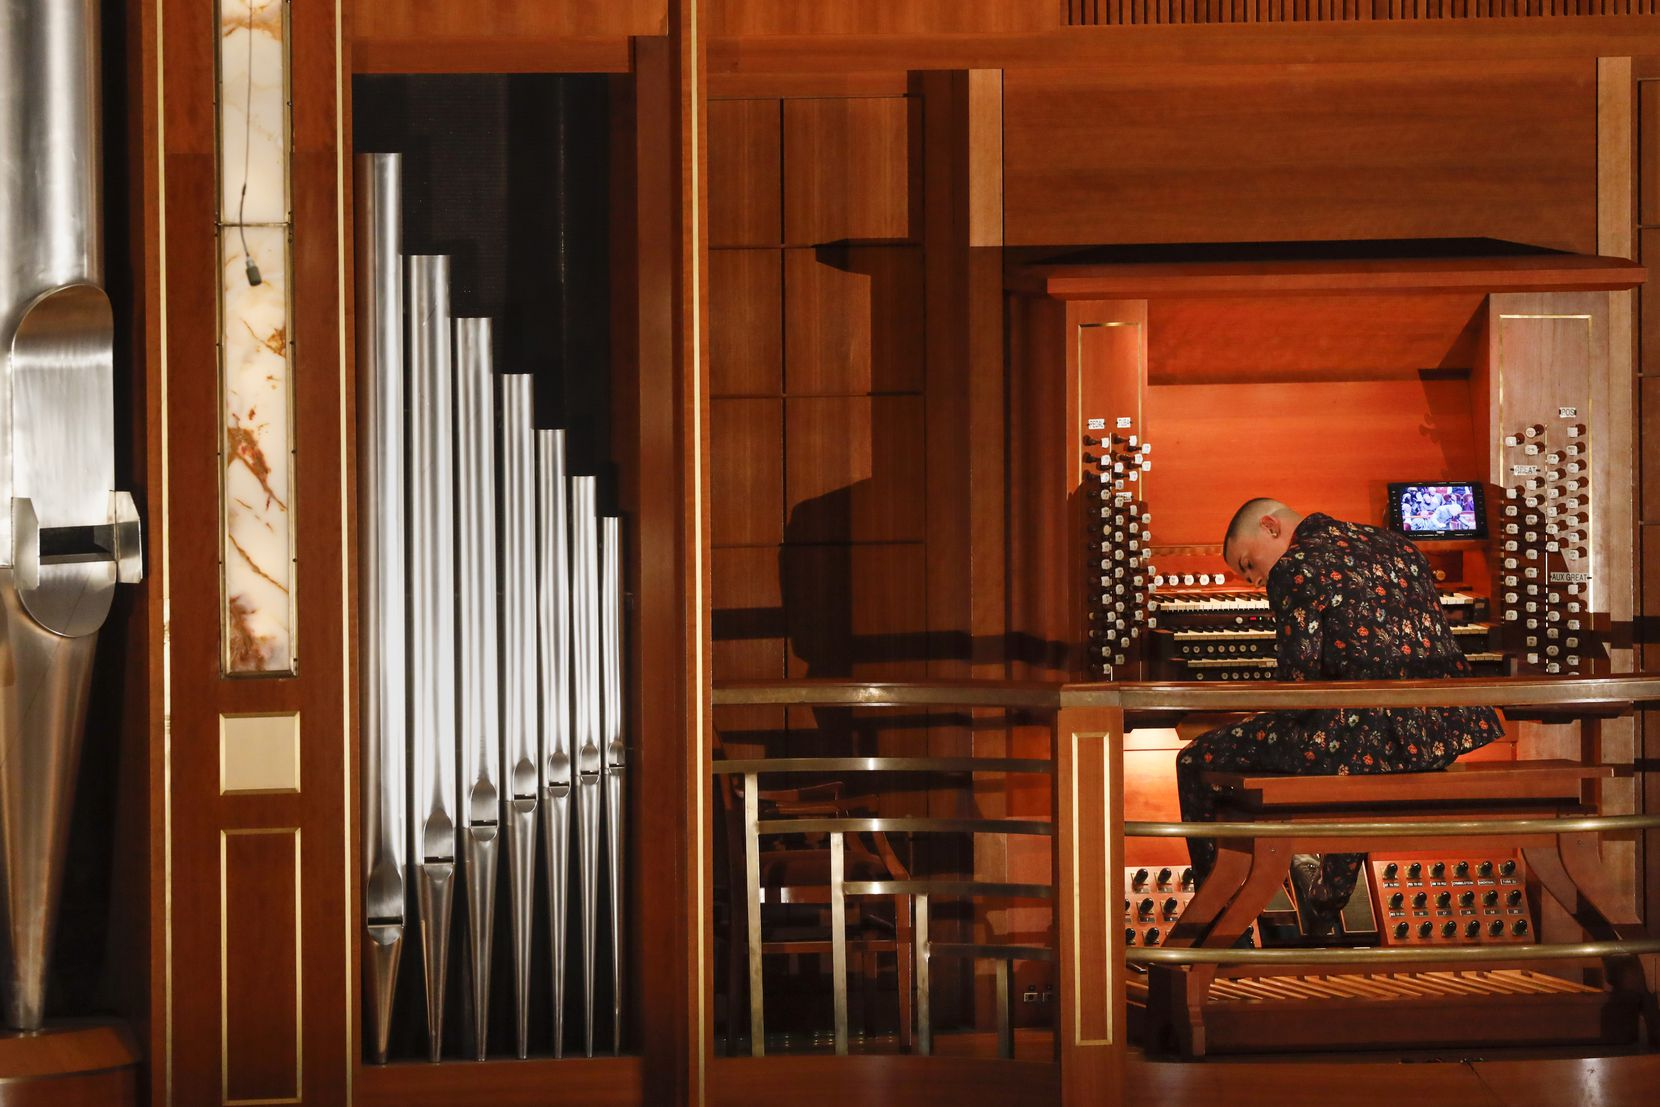 Organist Cameron Carpenter performs with the Dallas Symphony Orchestra during a concert on Thursday, Feb. 27, 2020, at the Morton H. Meyerson Symphony Center in Dallas.